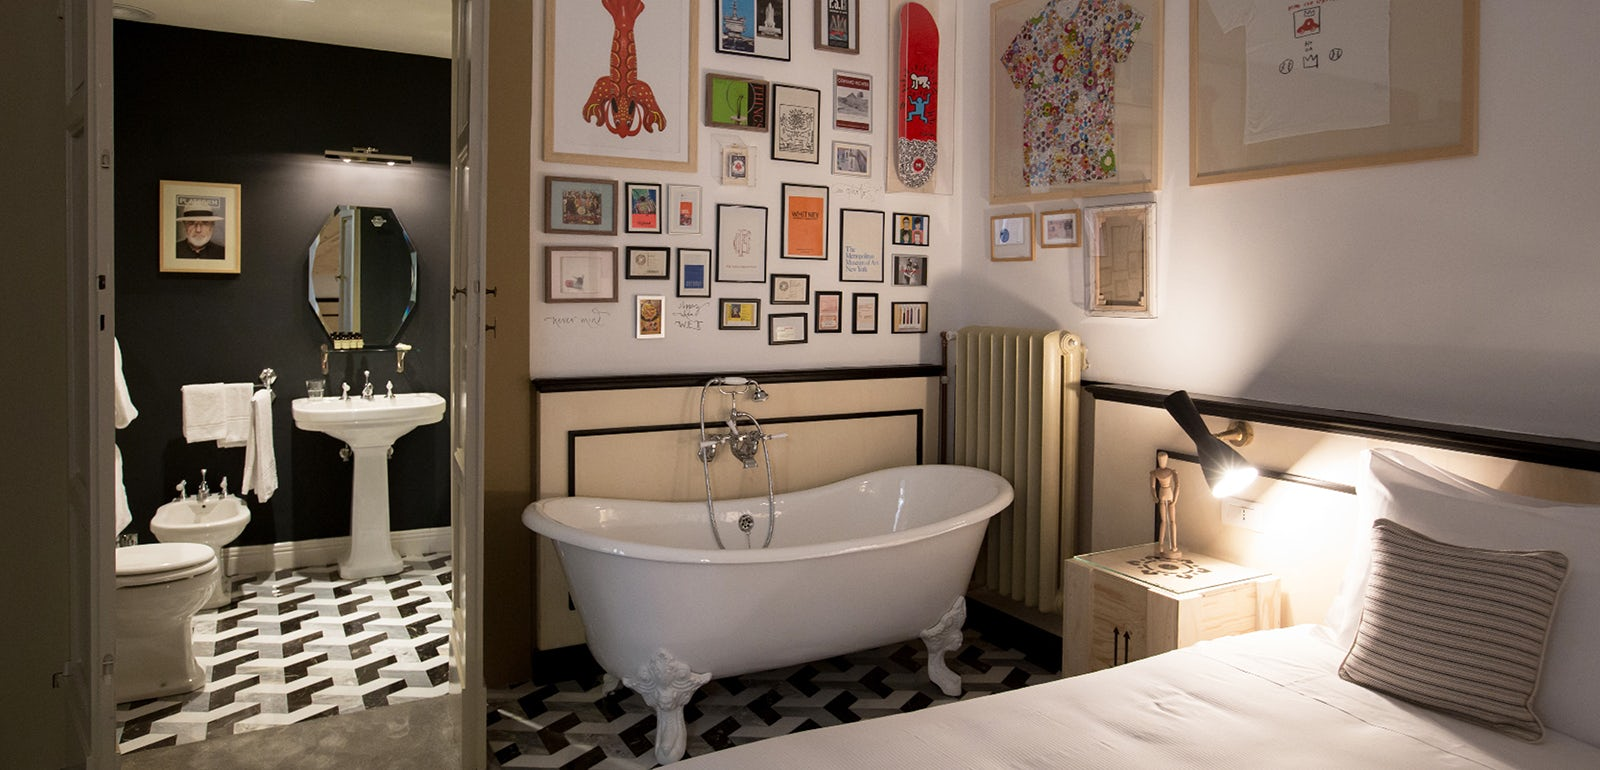 Exceptional The Worldu0027s Best Hotel Bathrooms: Get The 5 Star Look At Home